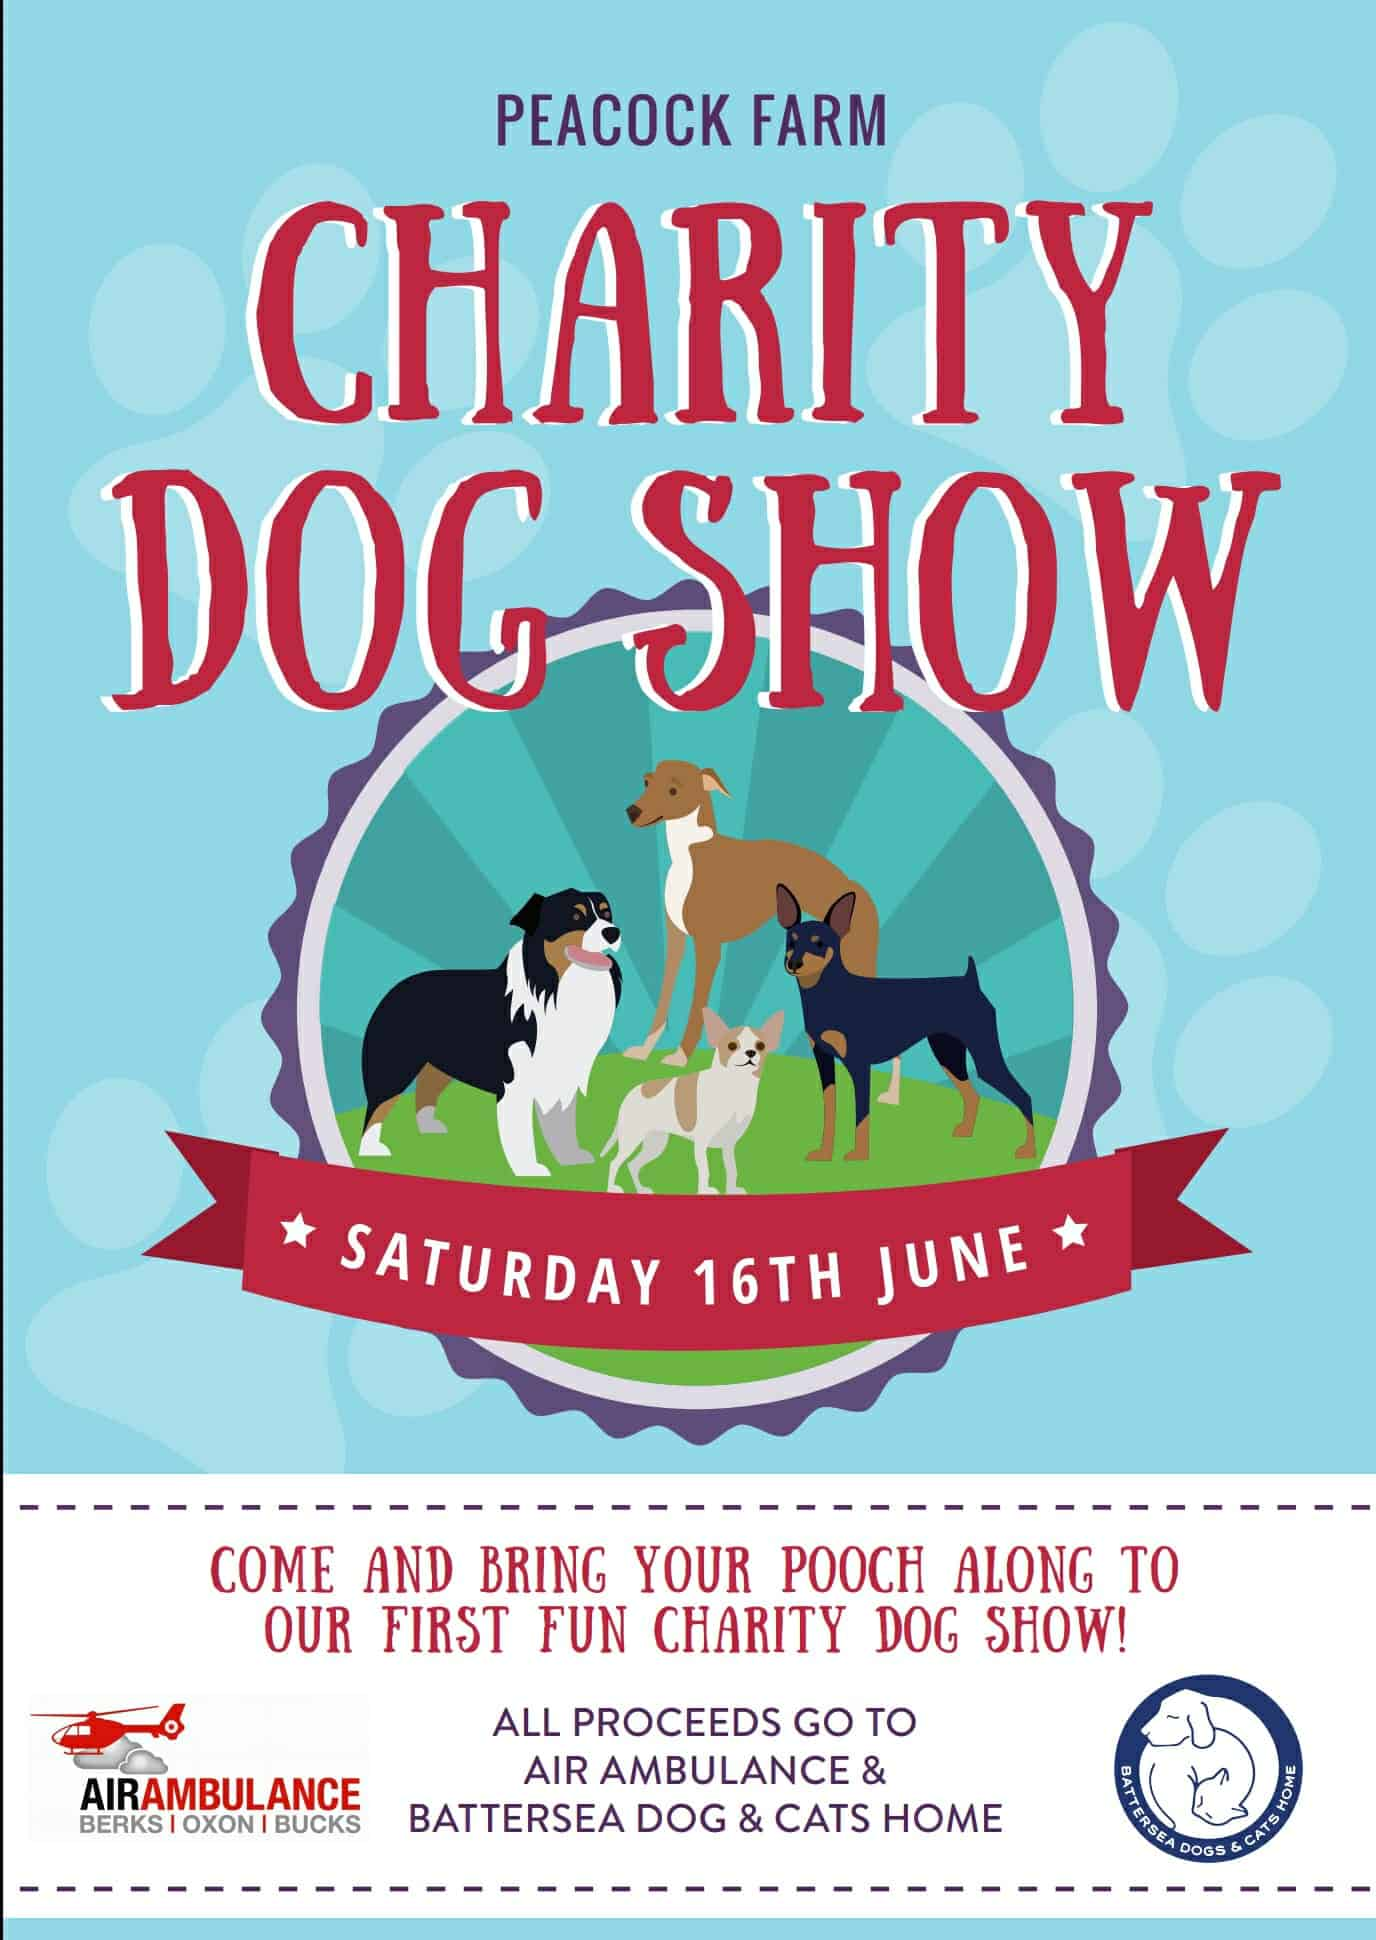 London Dog Shows - Peacock Farm Dog Show - London Dog Events